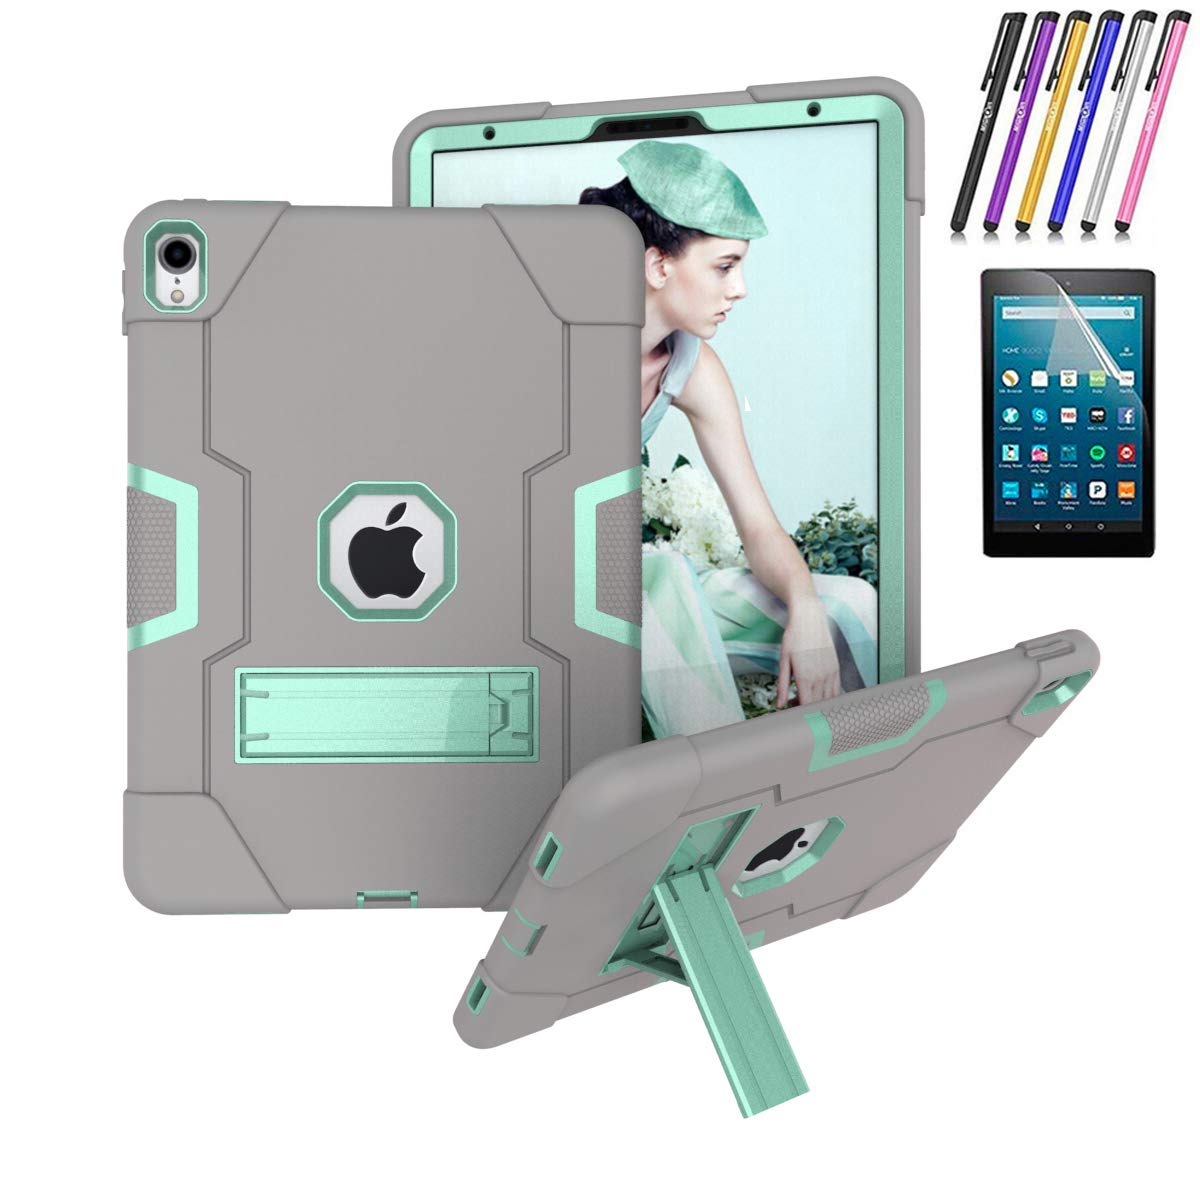 "iPad Pro 11"" Three Layer Hybrid Rugged Heavy Duty Shockproof Anti-Slip Case Full Body Protection Cover for Apple iPad Pro 11"" 2018 (Gray/Mint Green)"